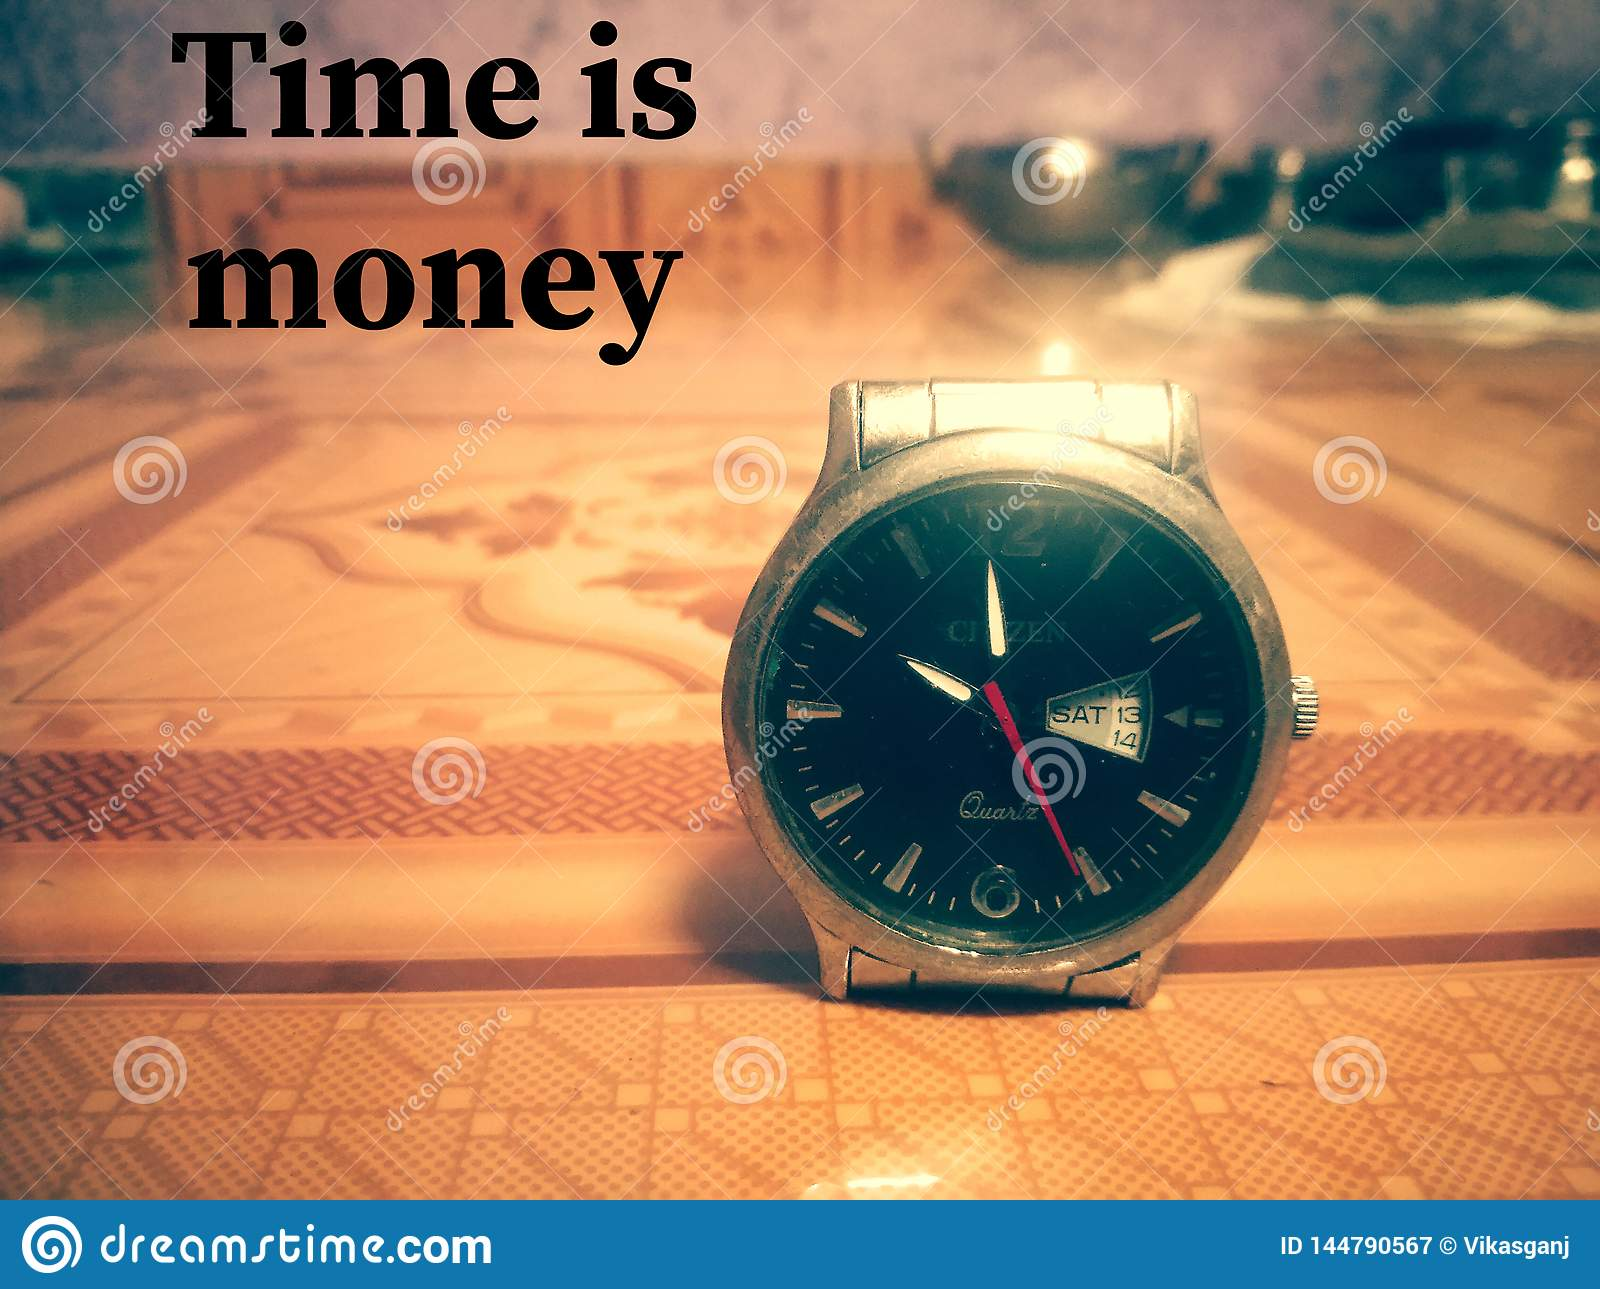 Time is money wallpaper